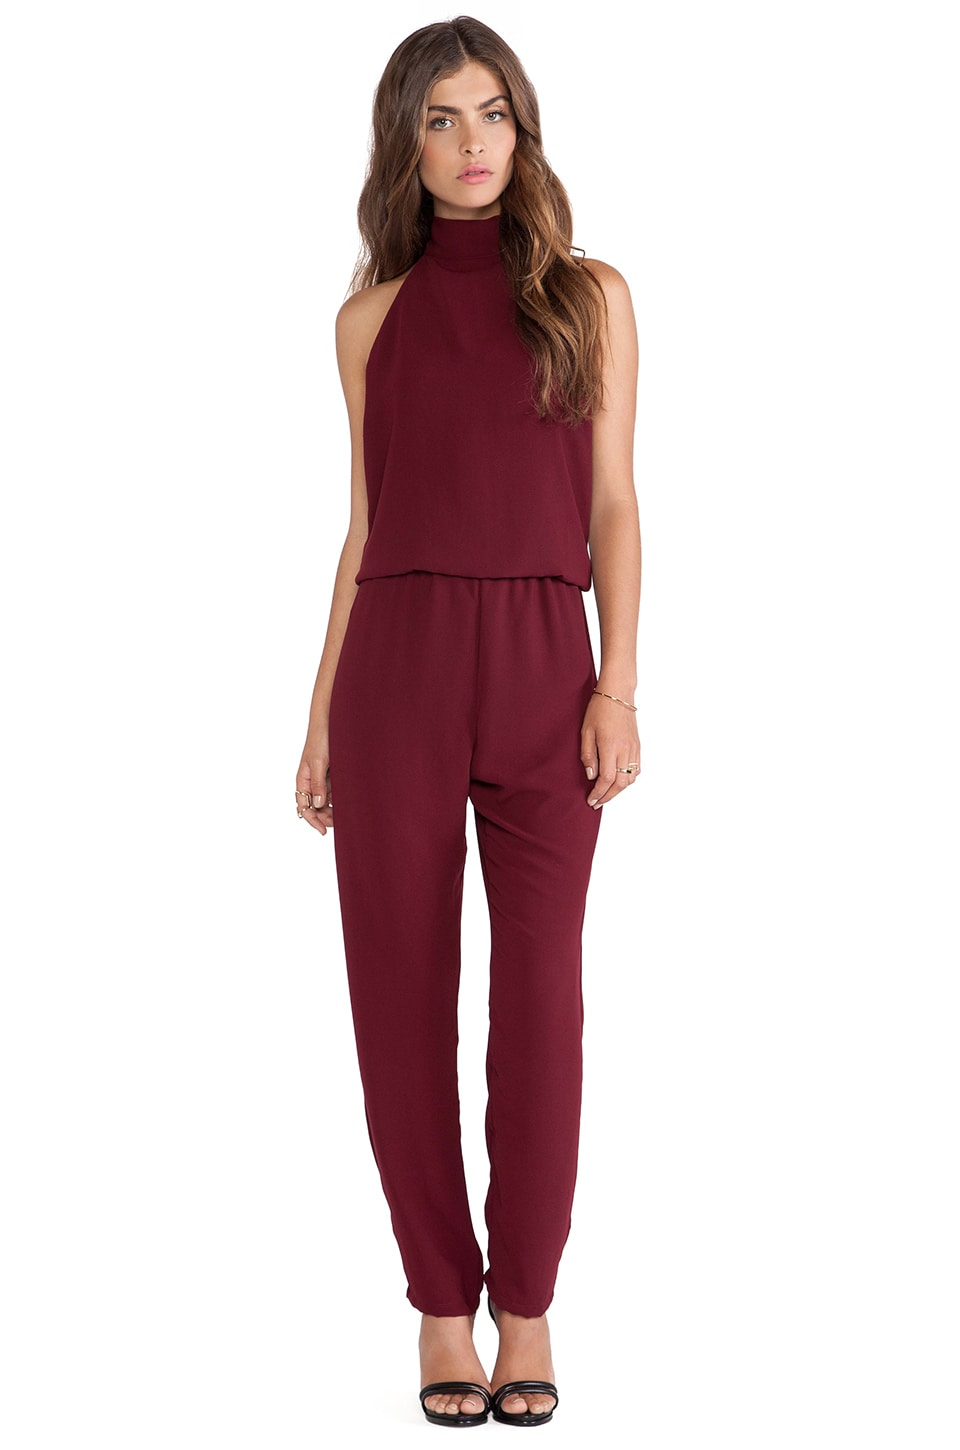 Backstage True Romance Jumpsuit in Merlot